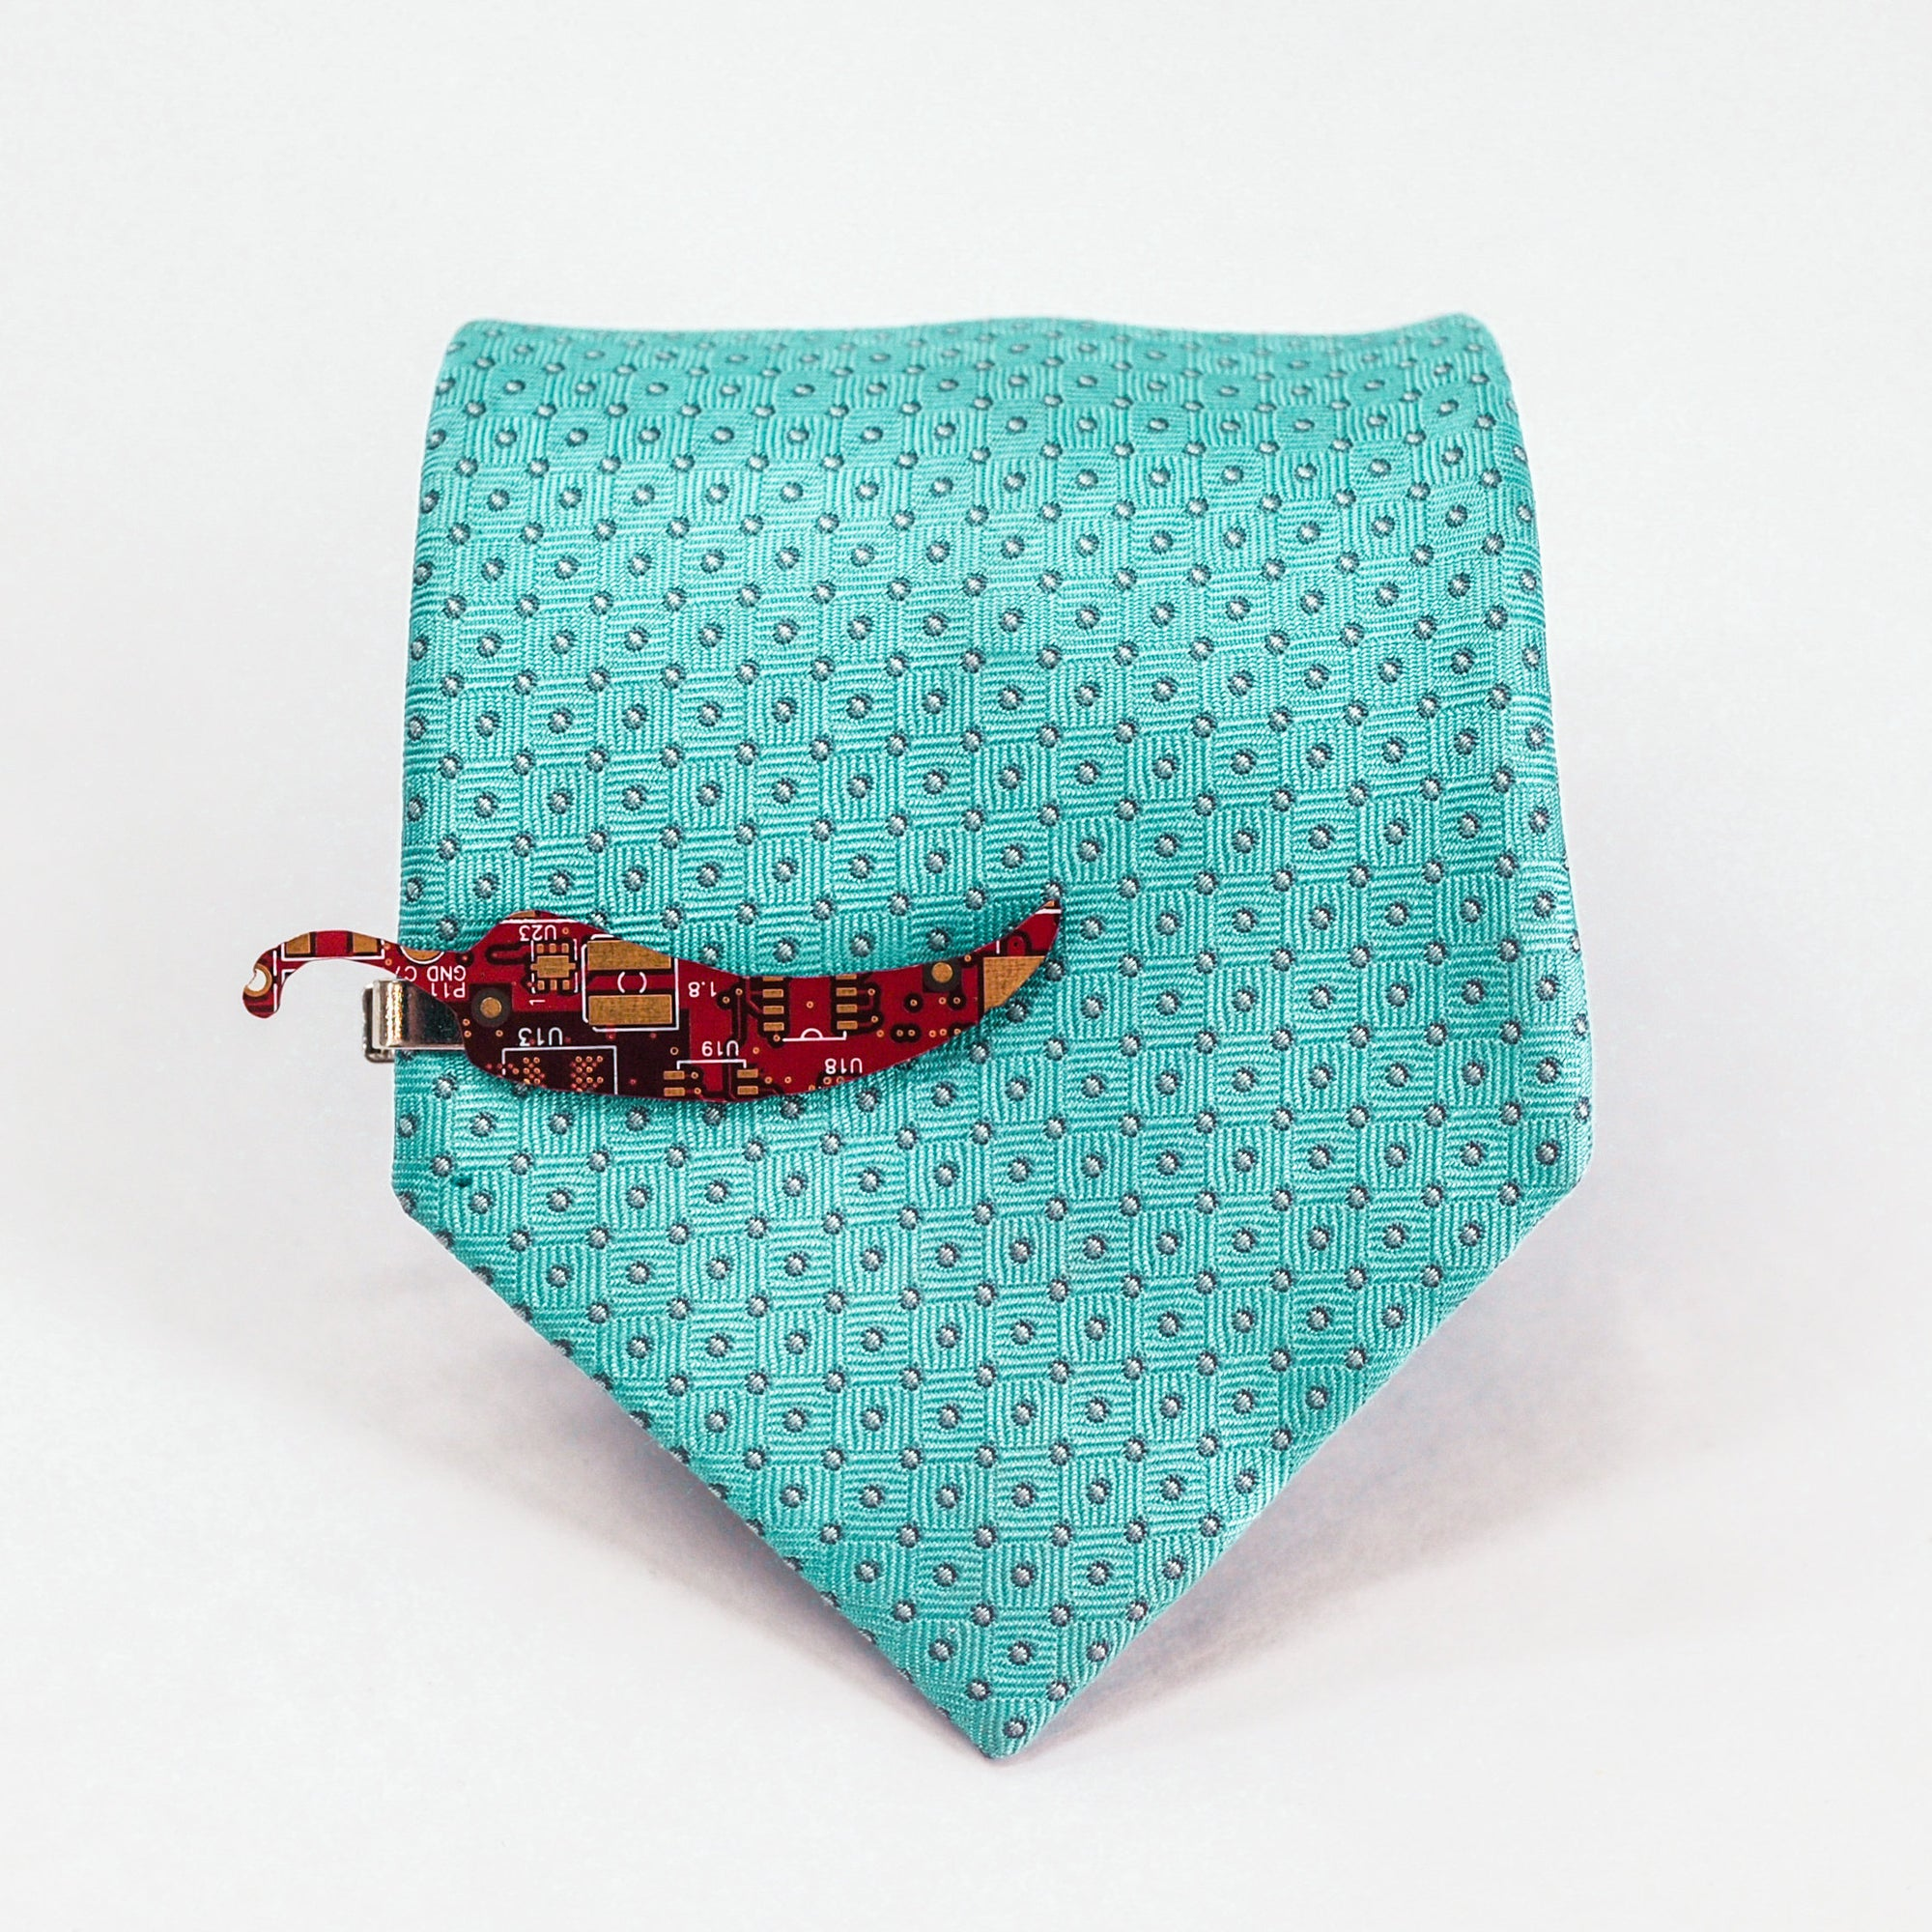 Circuit Board Chili Pepper Tie Clips - TechWears Ltd